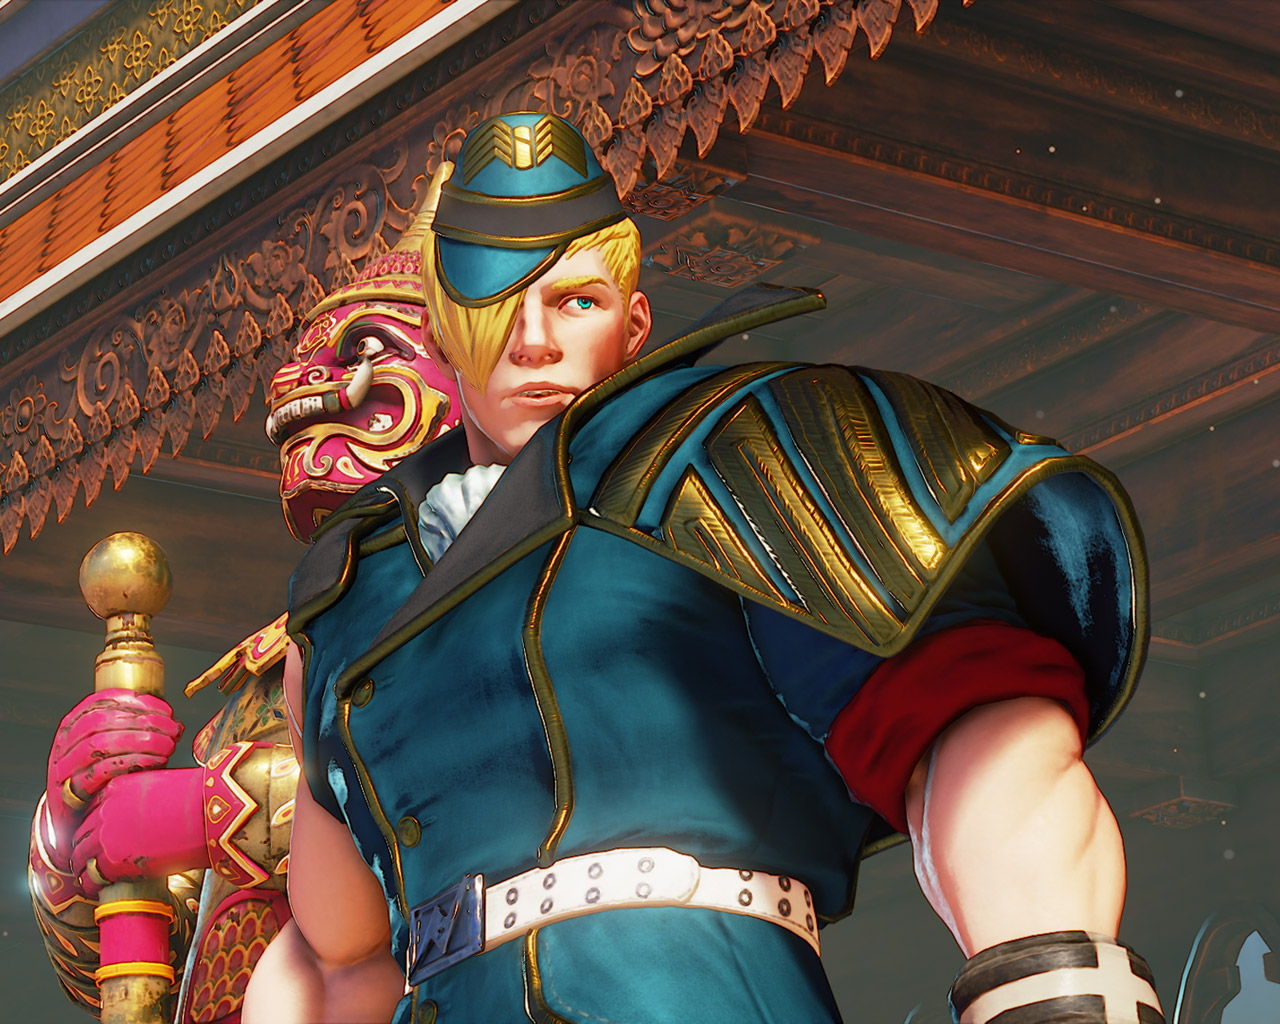 Free Street Fighter V Wallpaper in 1280x1024